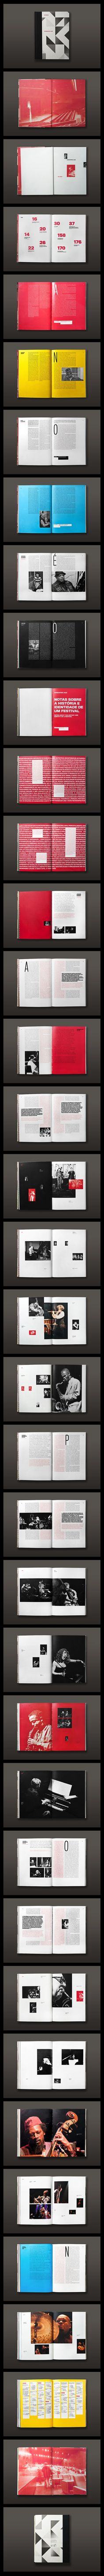 Jazz 20 Year Edition Book | Cool Printed Brochure Designs